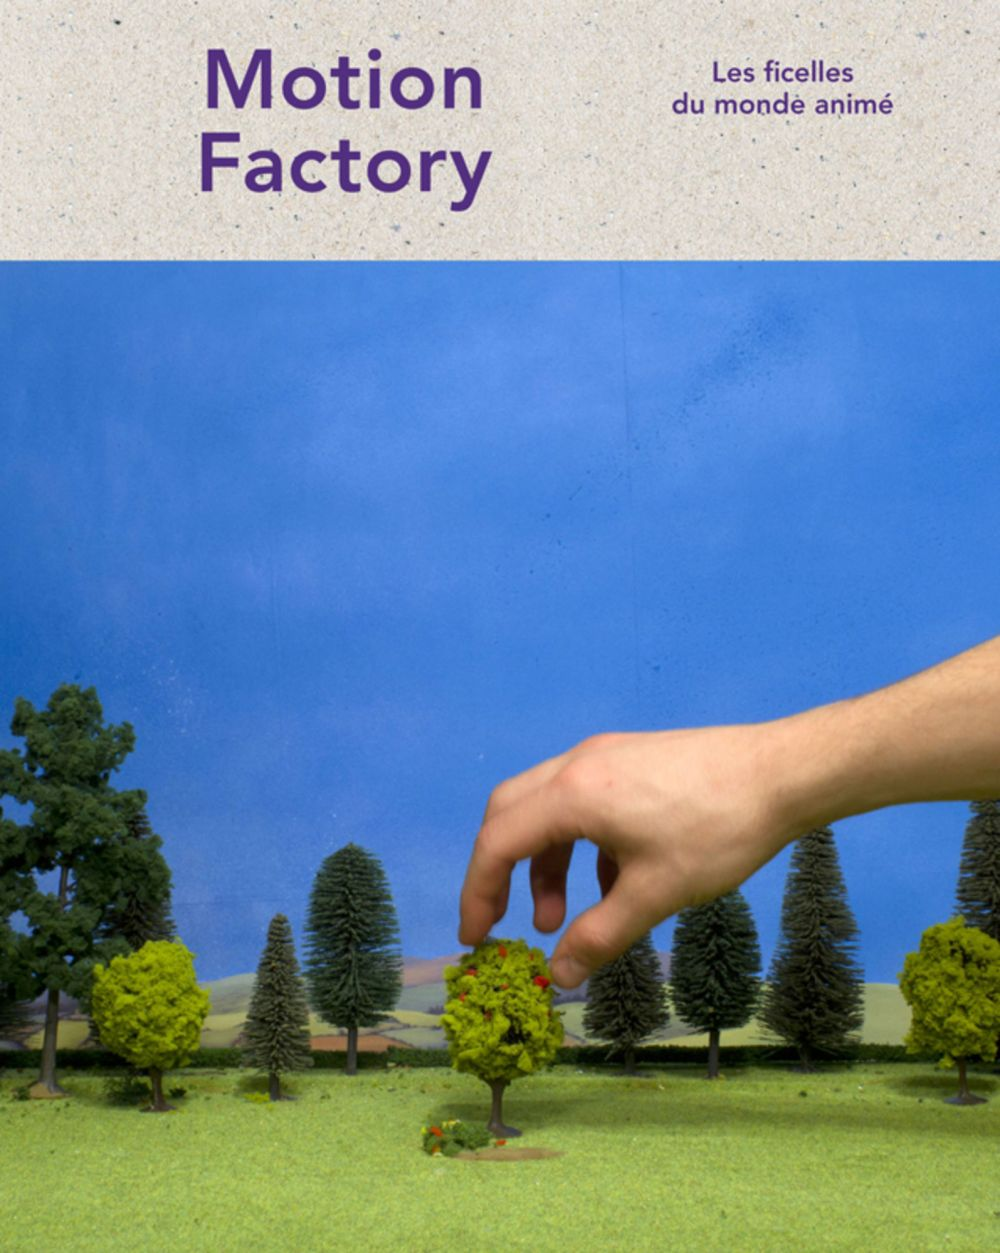 motion-factory3